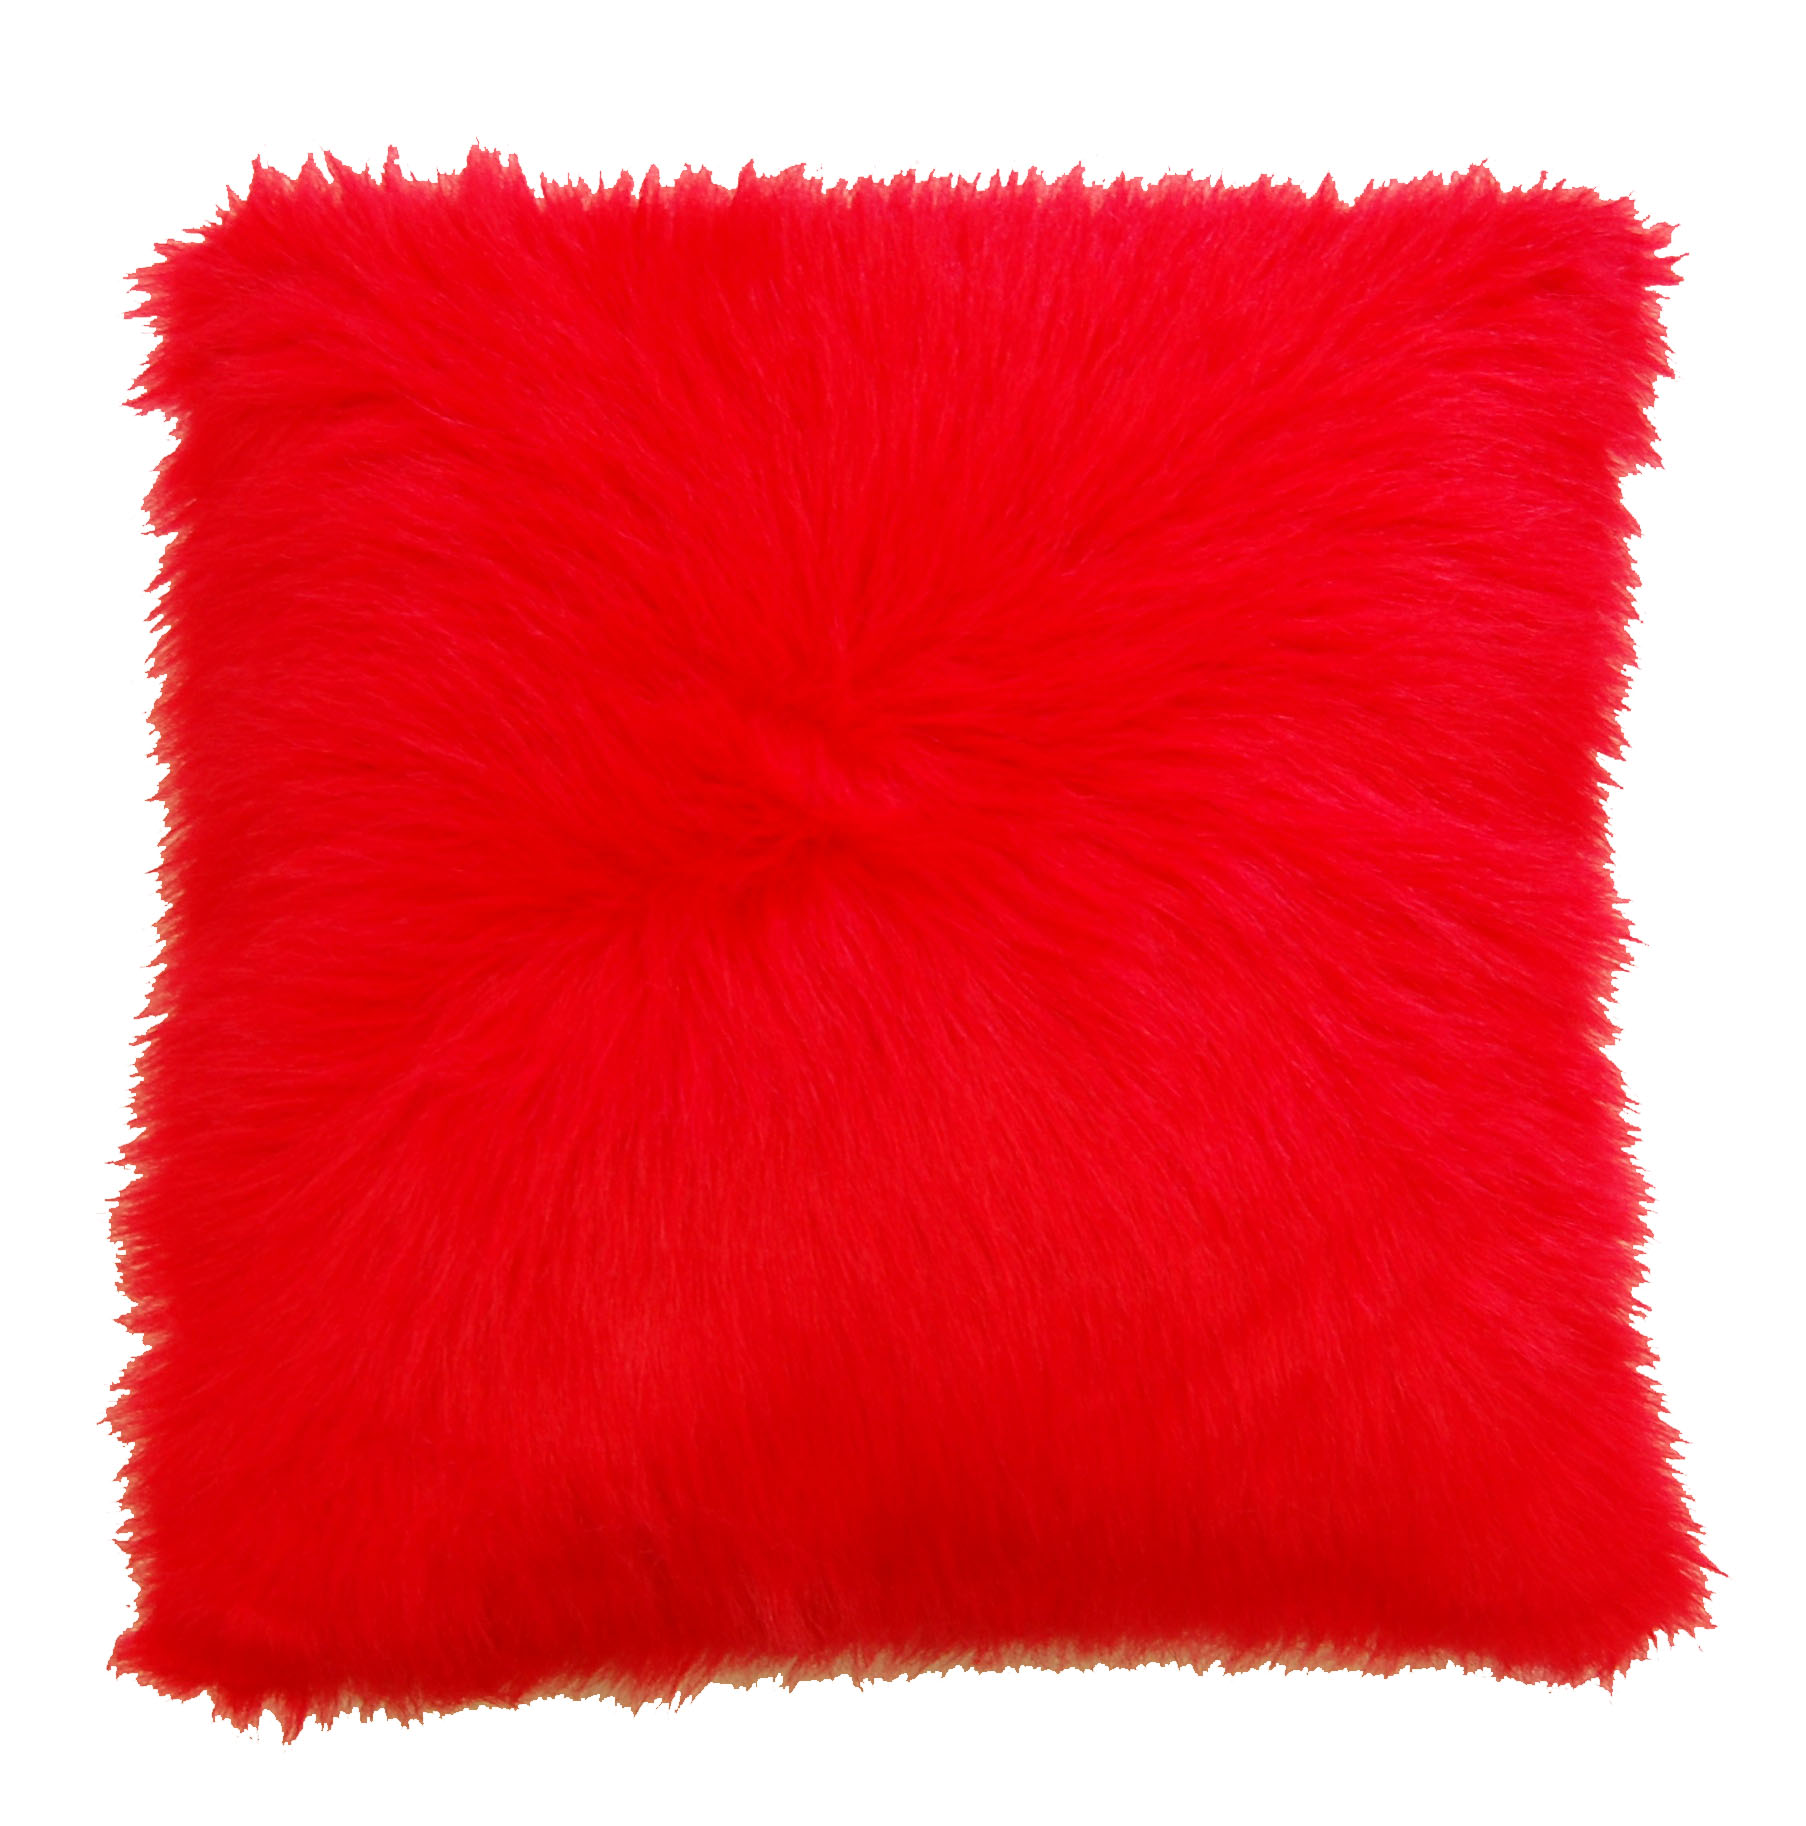 Find great deals on eBay for red fur pillow. Shop with confidence. Skip to main content. eBay: Shop by category. Shop by category. Enter your search keyword Fma Hot Red Faux Soft Thick Long Fur Cushion Cover/Pillow Case*Custom Size* $ From Hong Kong. Buy It Now. Free Shipping.